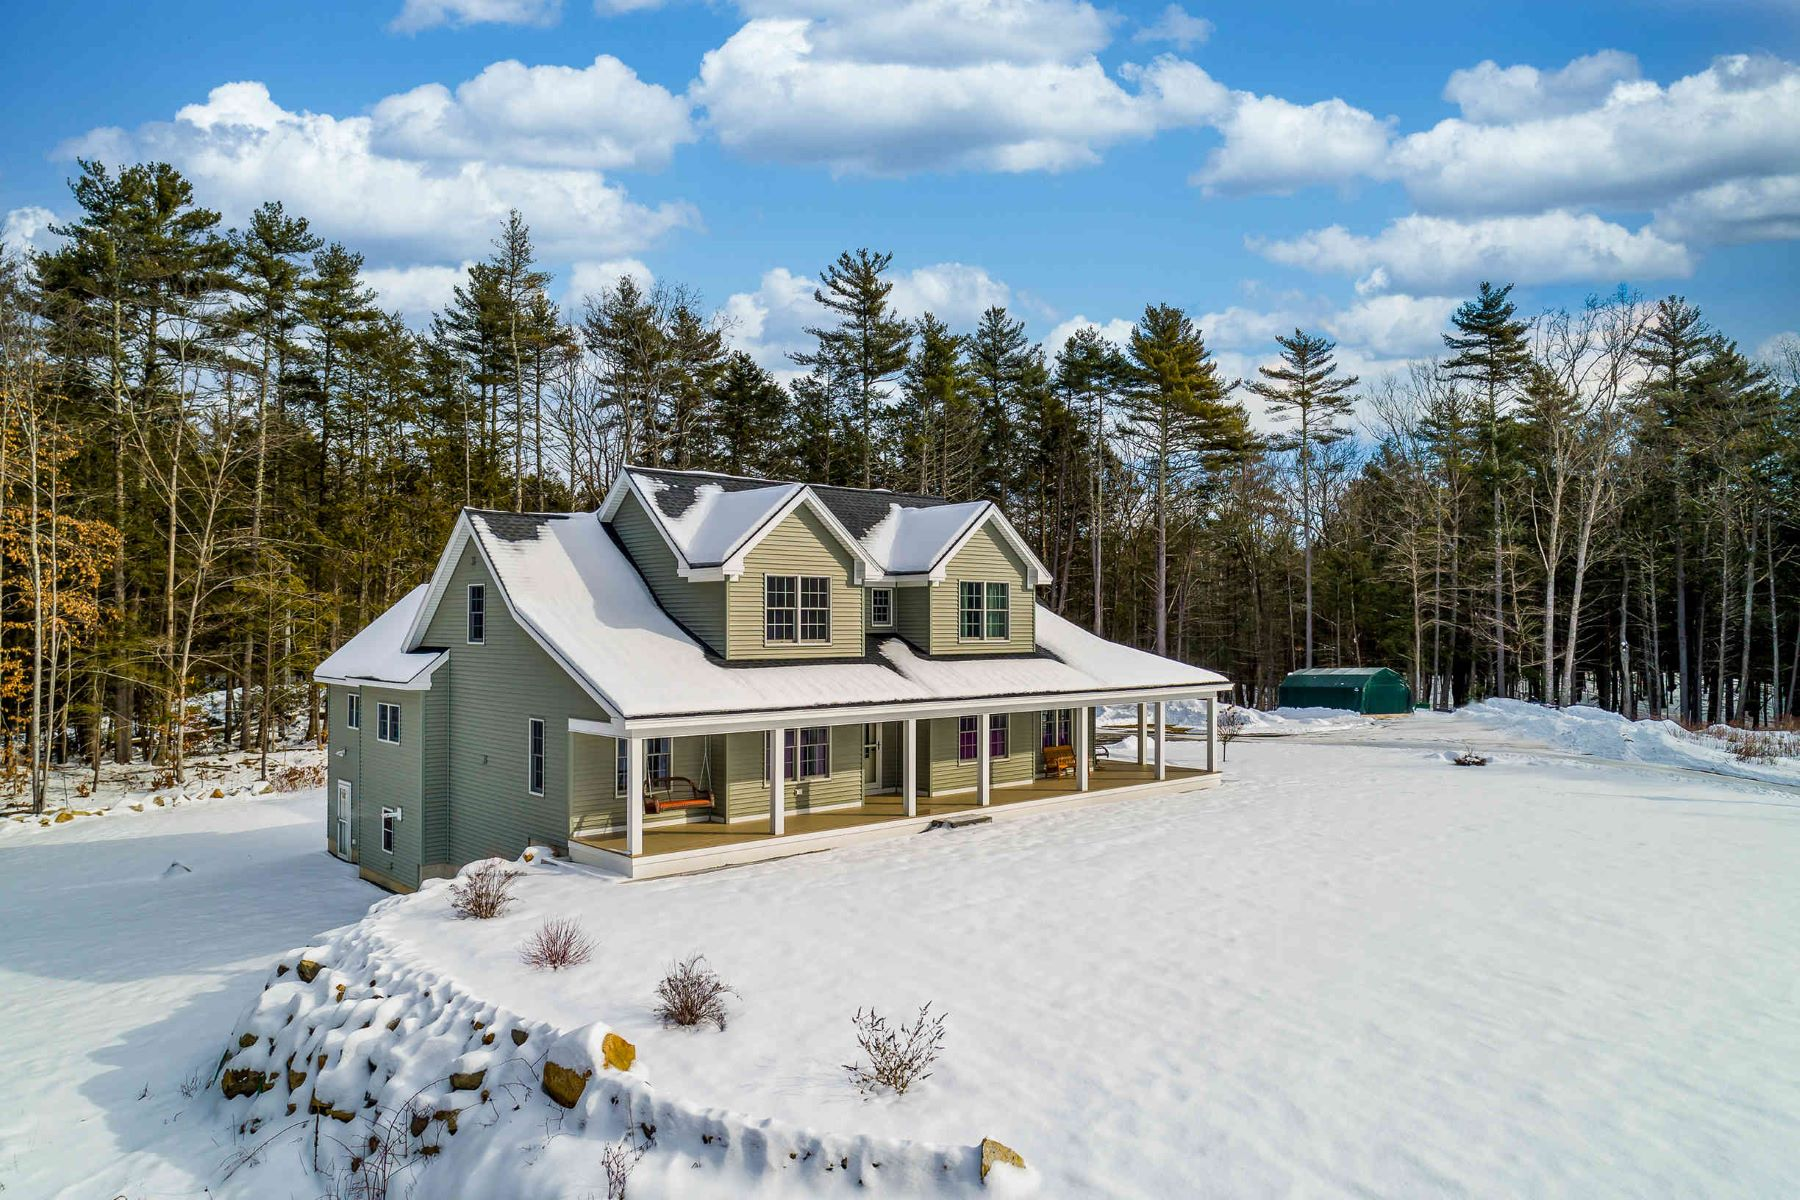 Single Family Homes for Sale at 55 Marcie Way, Ogunquit 55 Marcie Way Ogunquit, Maine 03907 United States